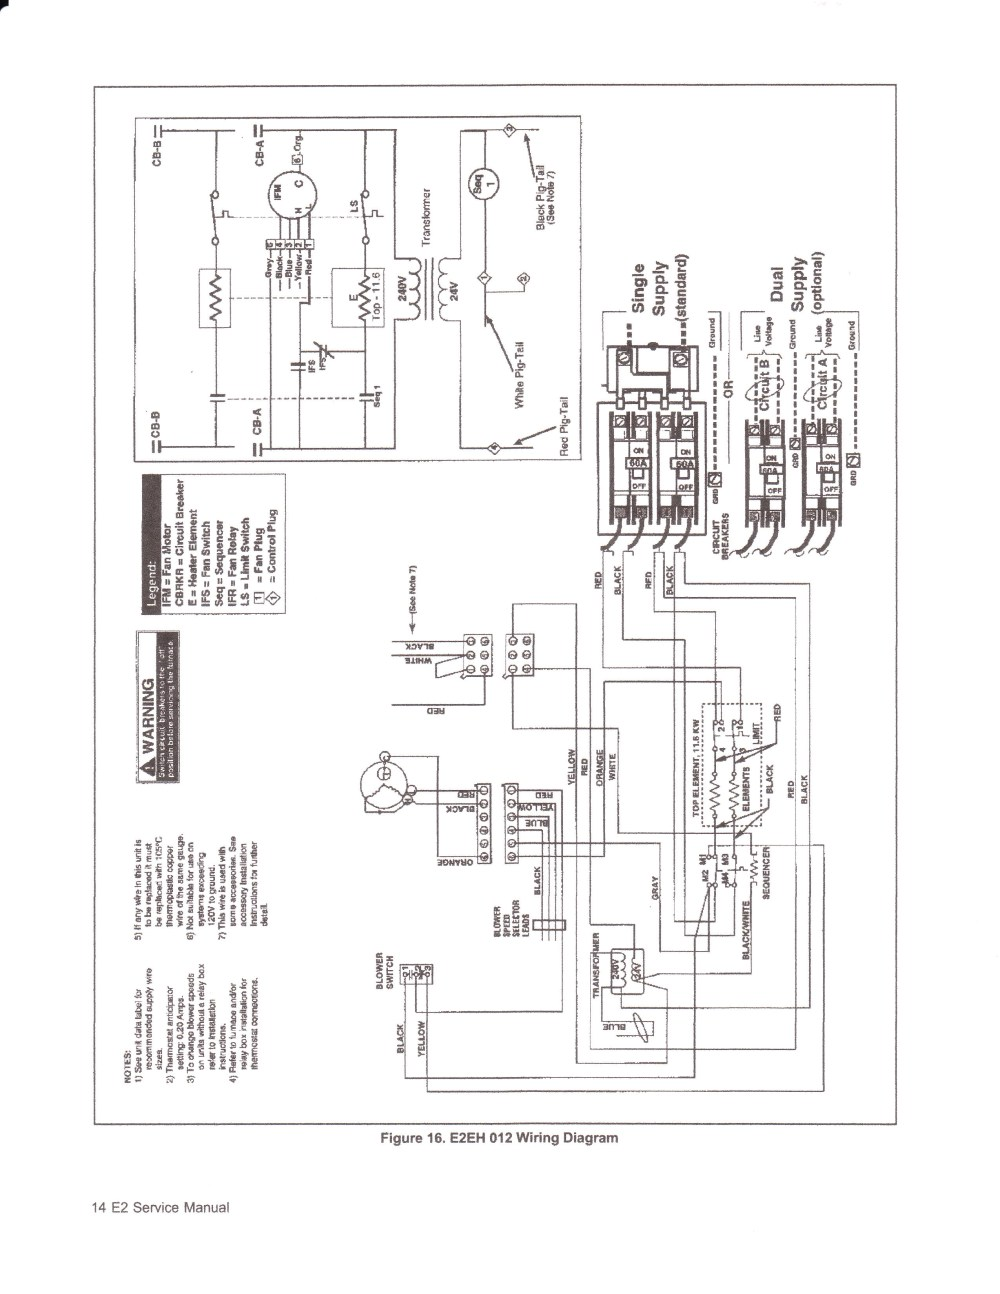 medium resolution of ac furnace wiring diagram wiring diagram database coleman mobile home furnace wiring diagram home furnace wiring diagram